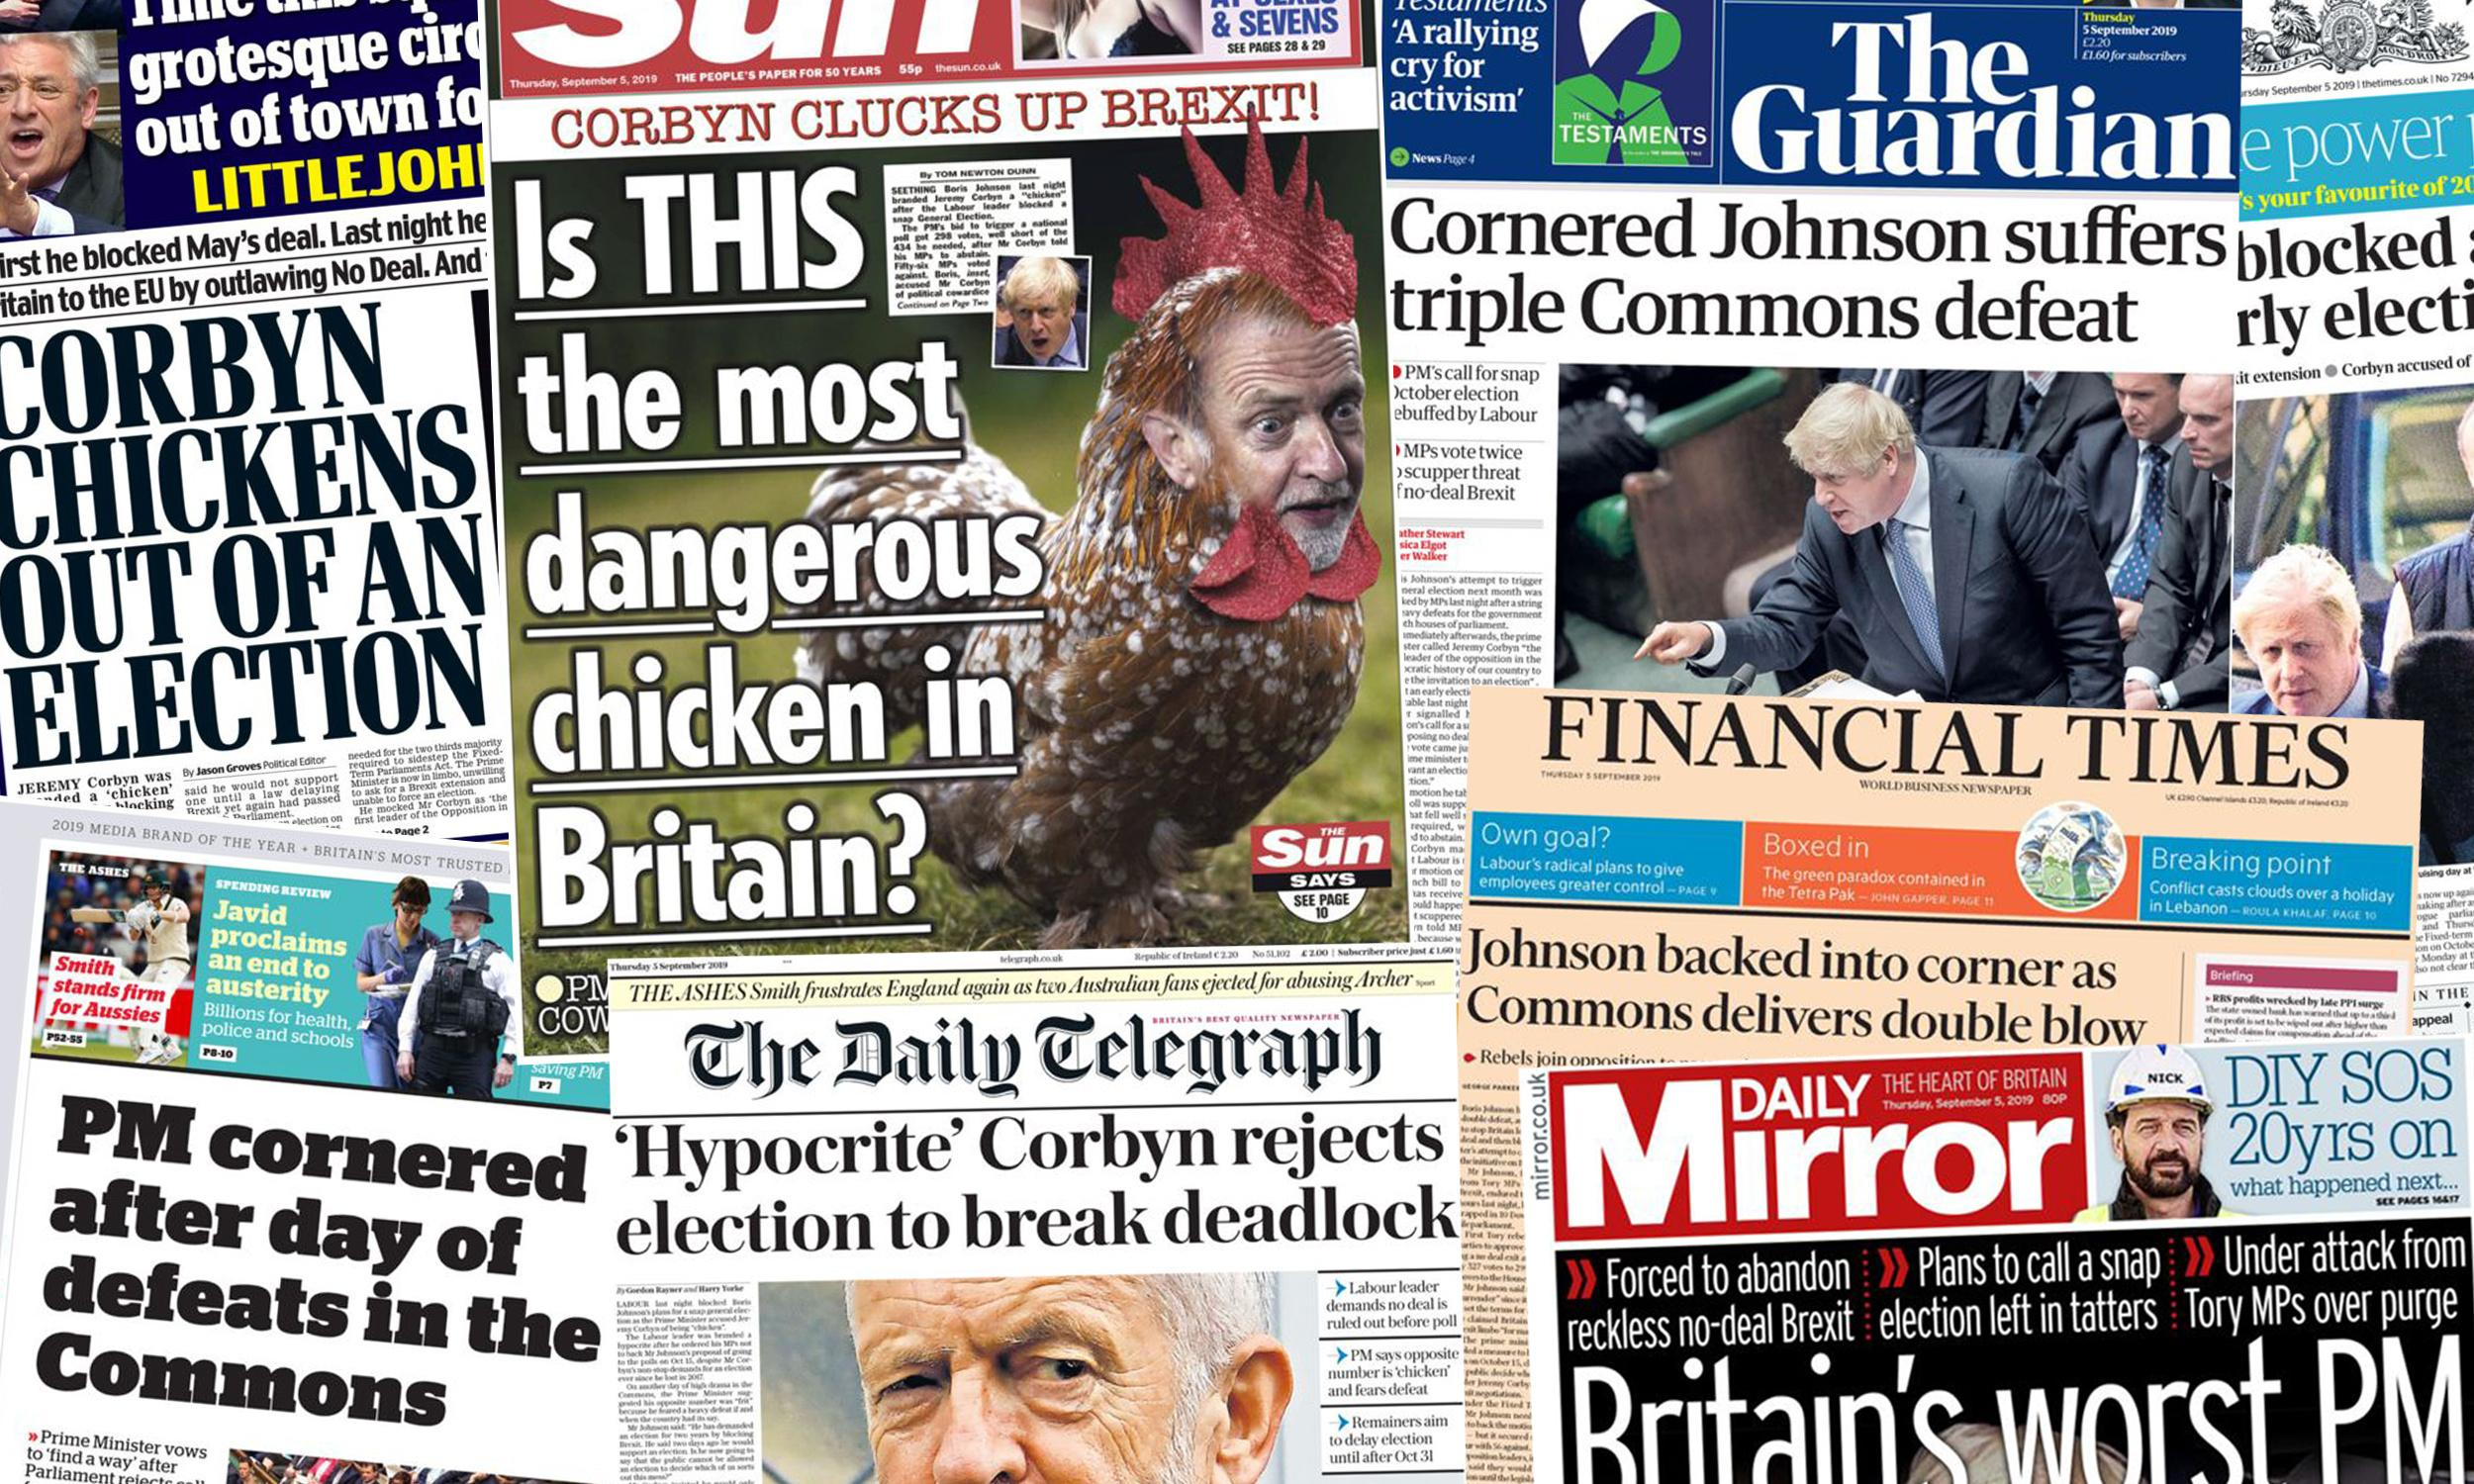 'PM cornered': how the papers covered Johnson's horror day in Commons